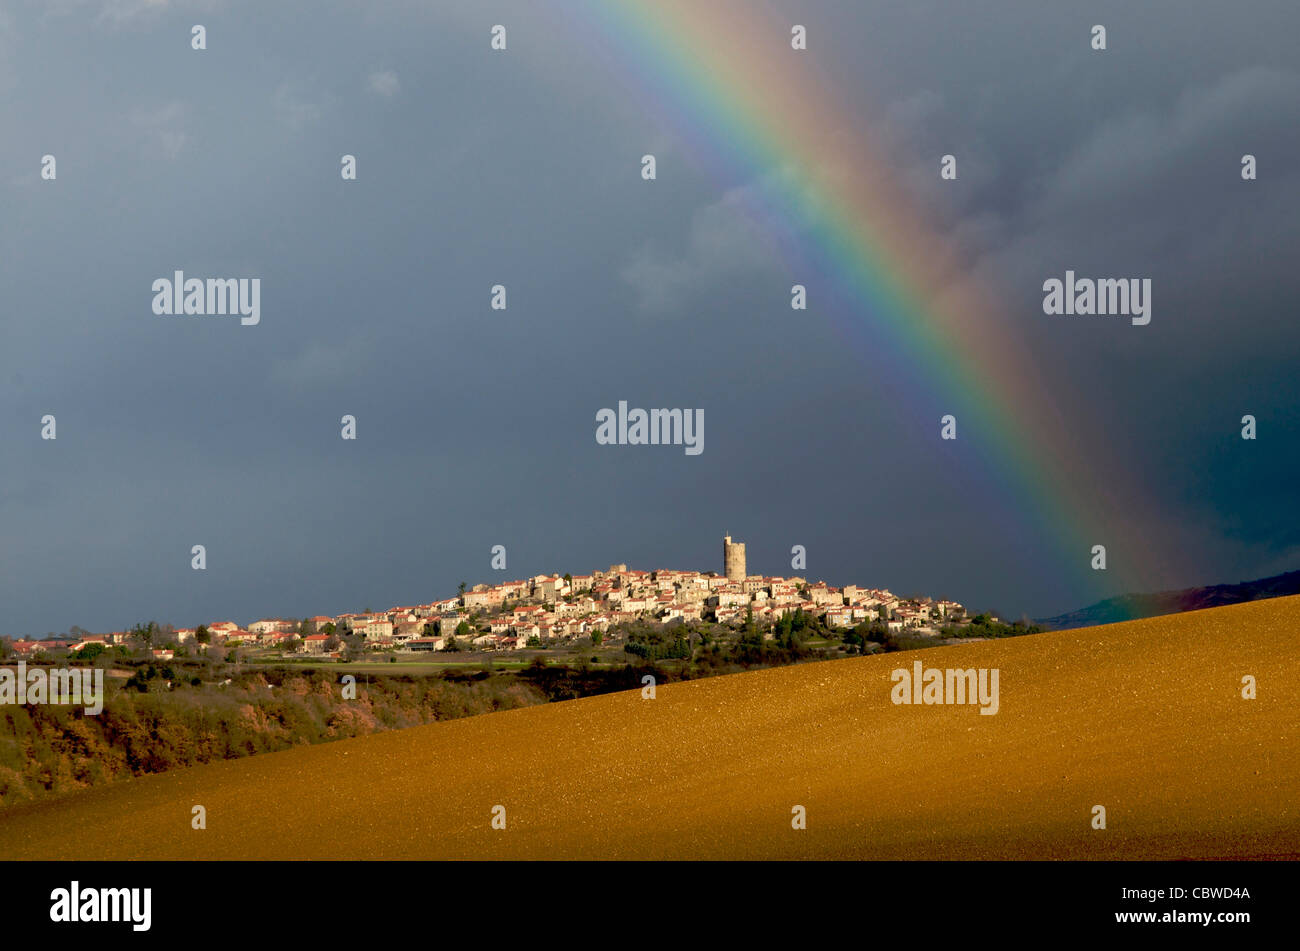 Rainbow over the landscape and village of Montpeyroux, Auvergne, France - Stock Image